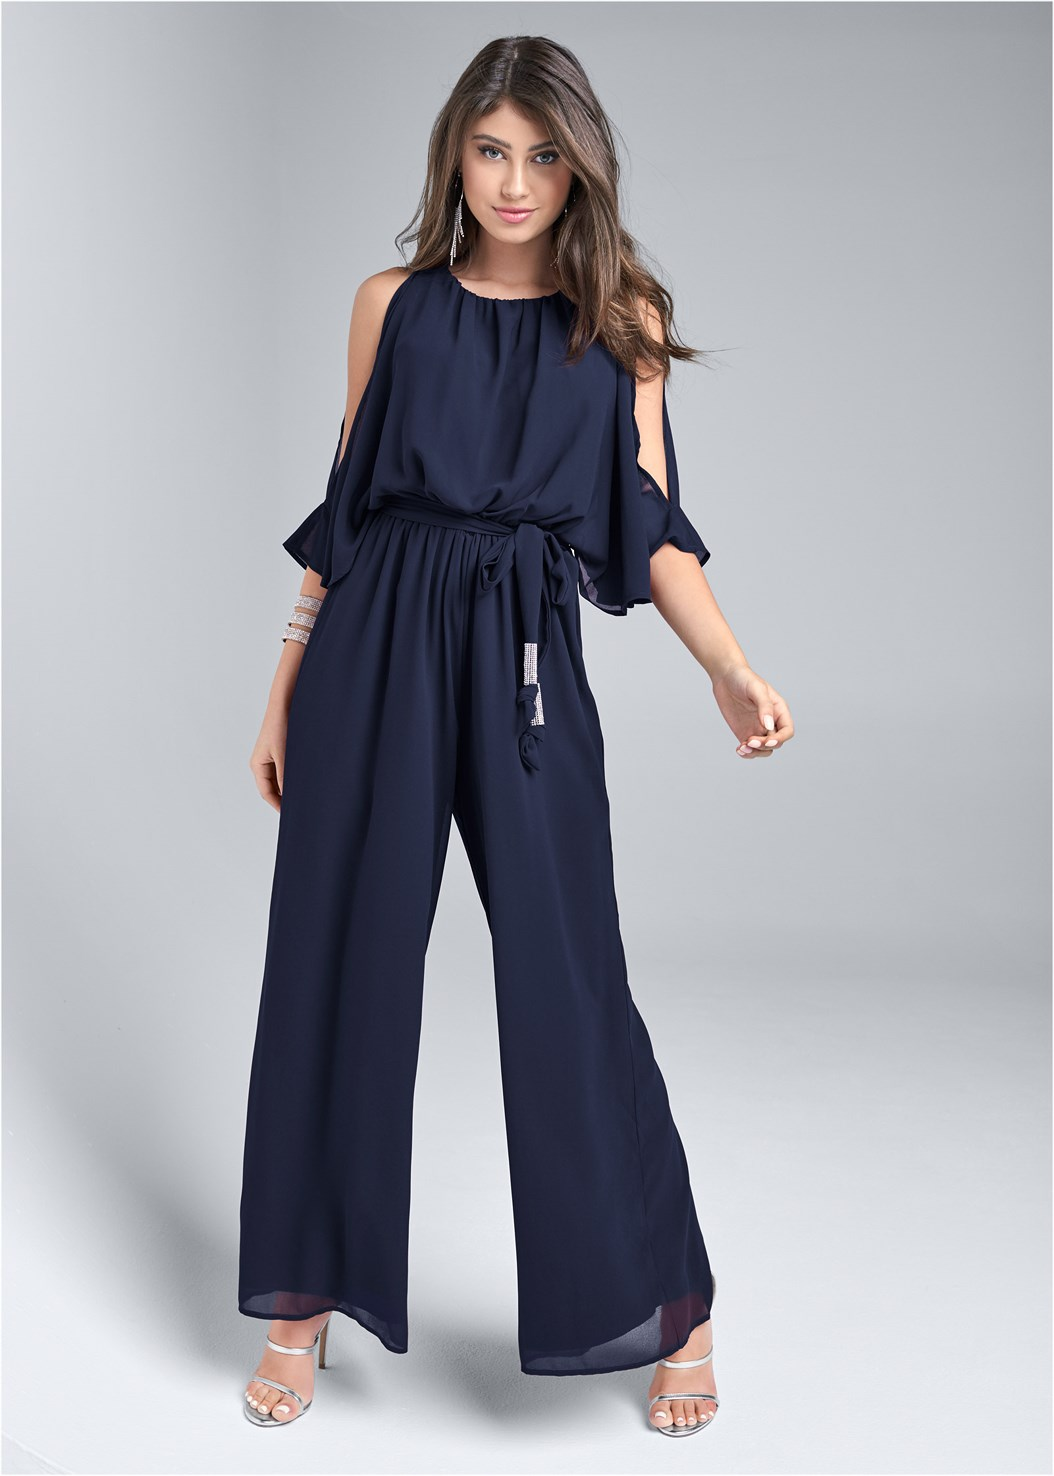 Cold Shoulder Jumpsuit,Seamless Unlined Bra,High Heel Strappy Sandals